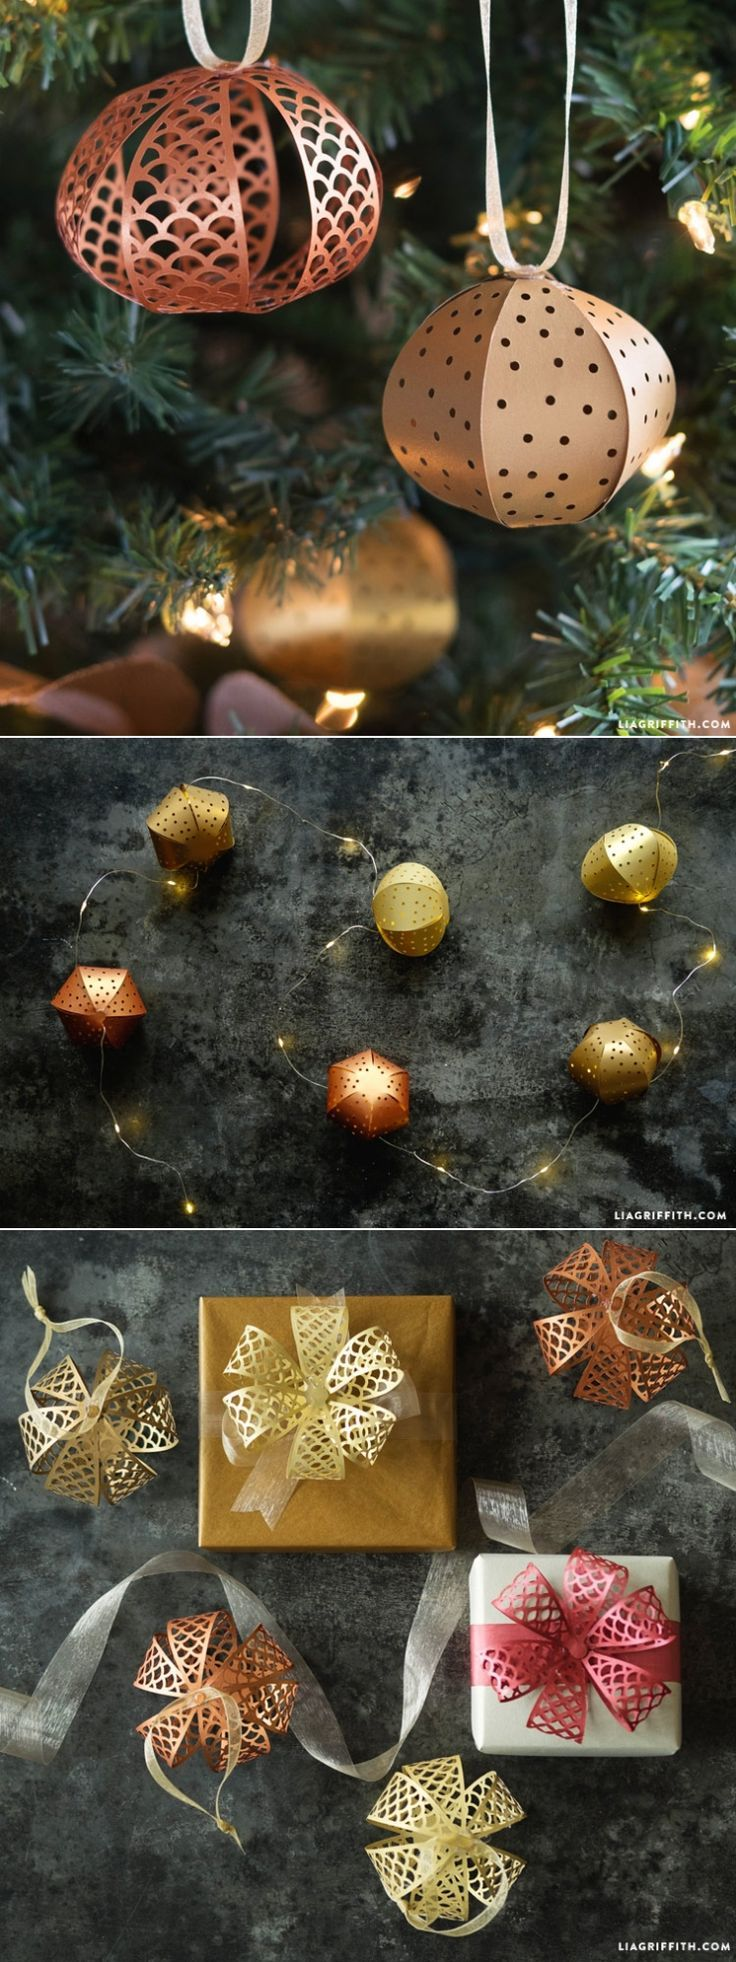 Papercut Christmas Ornaments that can be used as gift toppers or on a string of lights www.LiaGriffith.com #diyholidaydecor